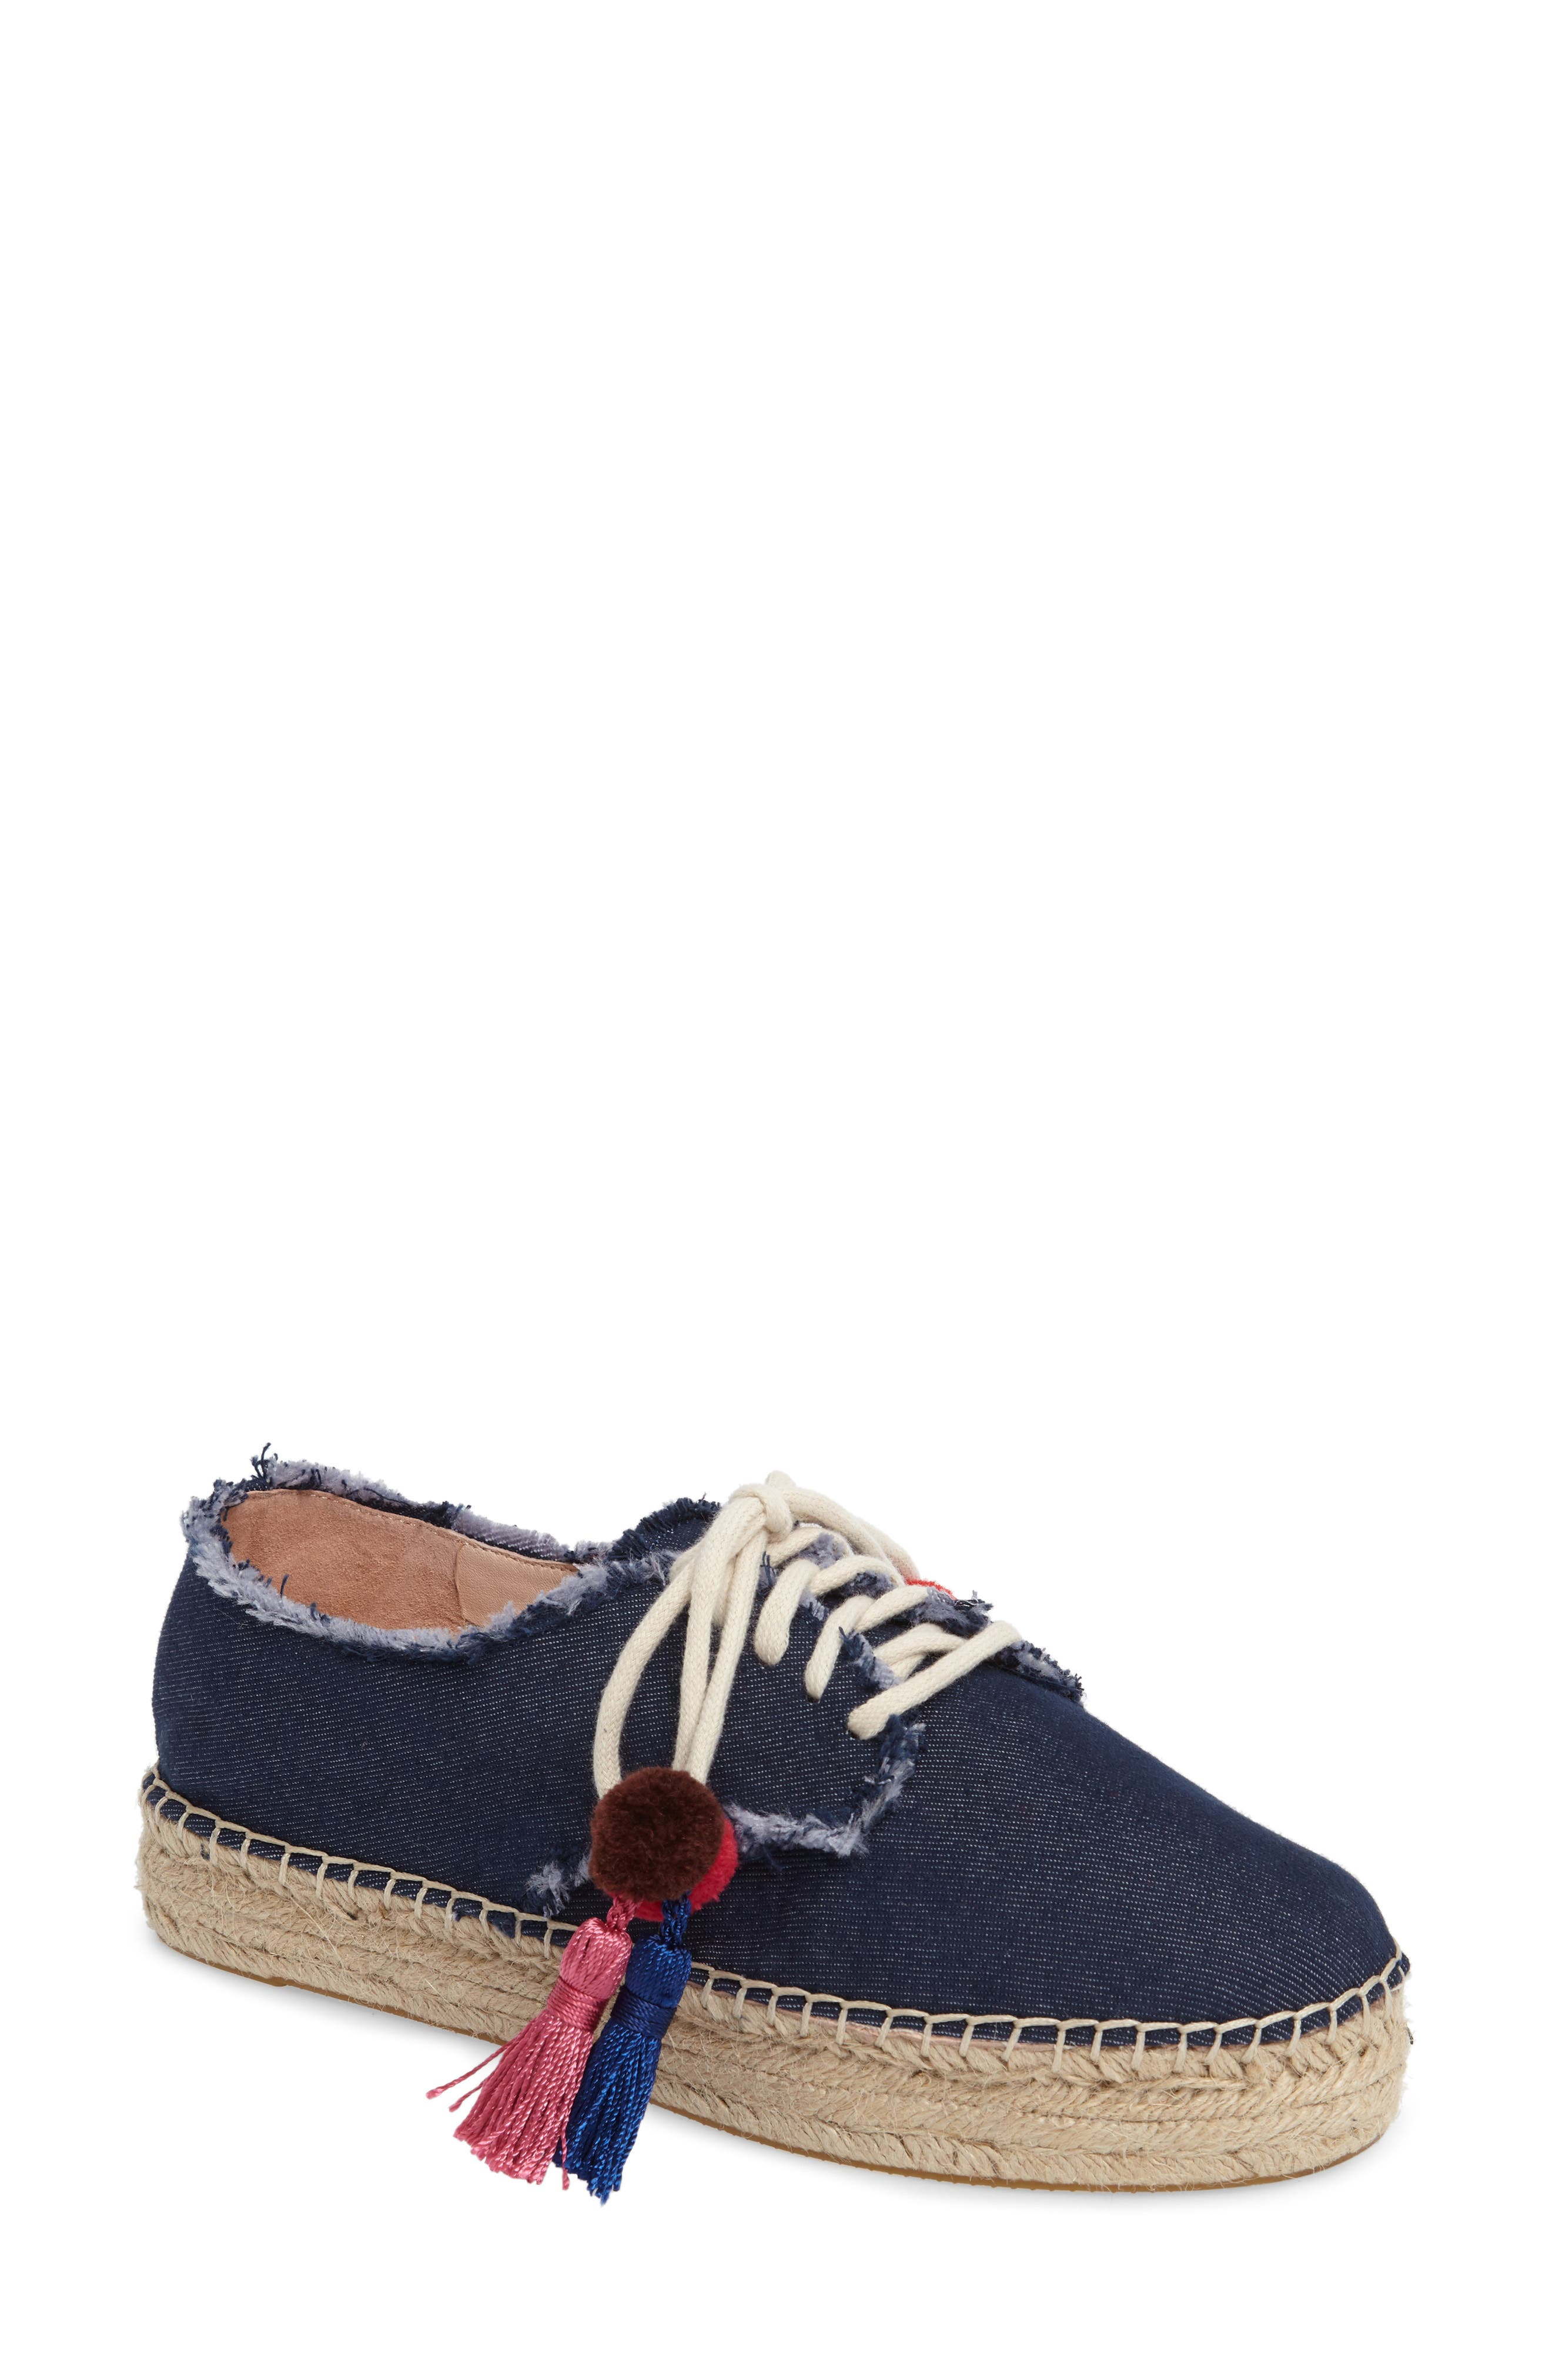 kate spade new york lane espadrille platform sneaker (Women)